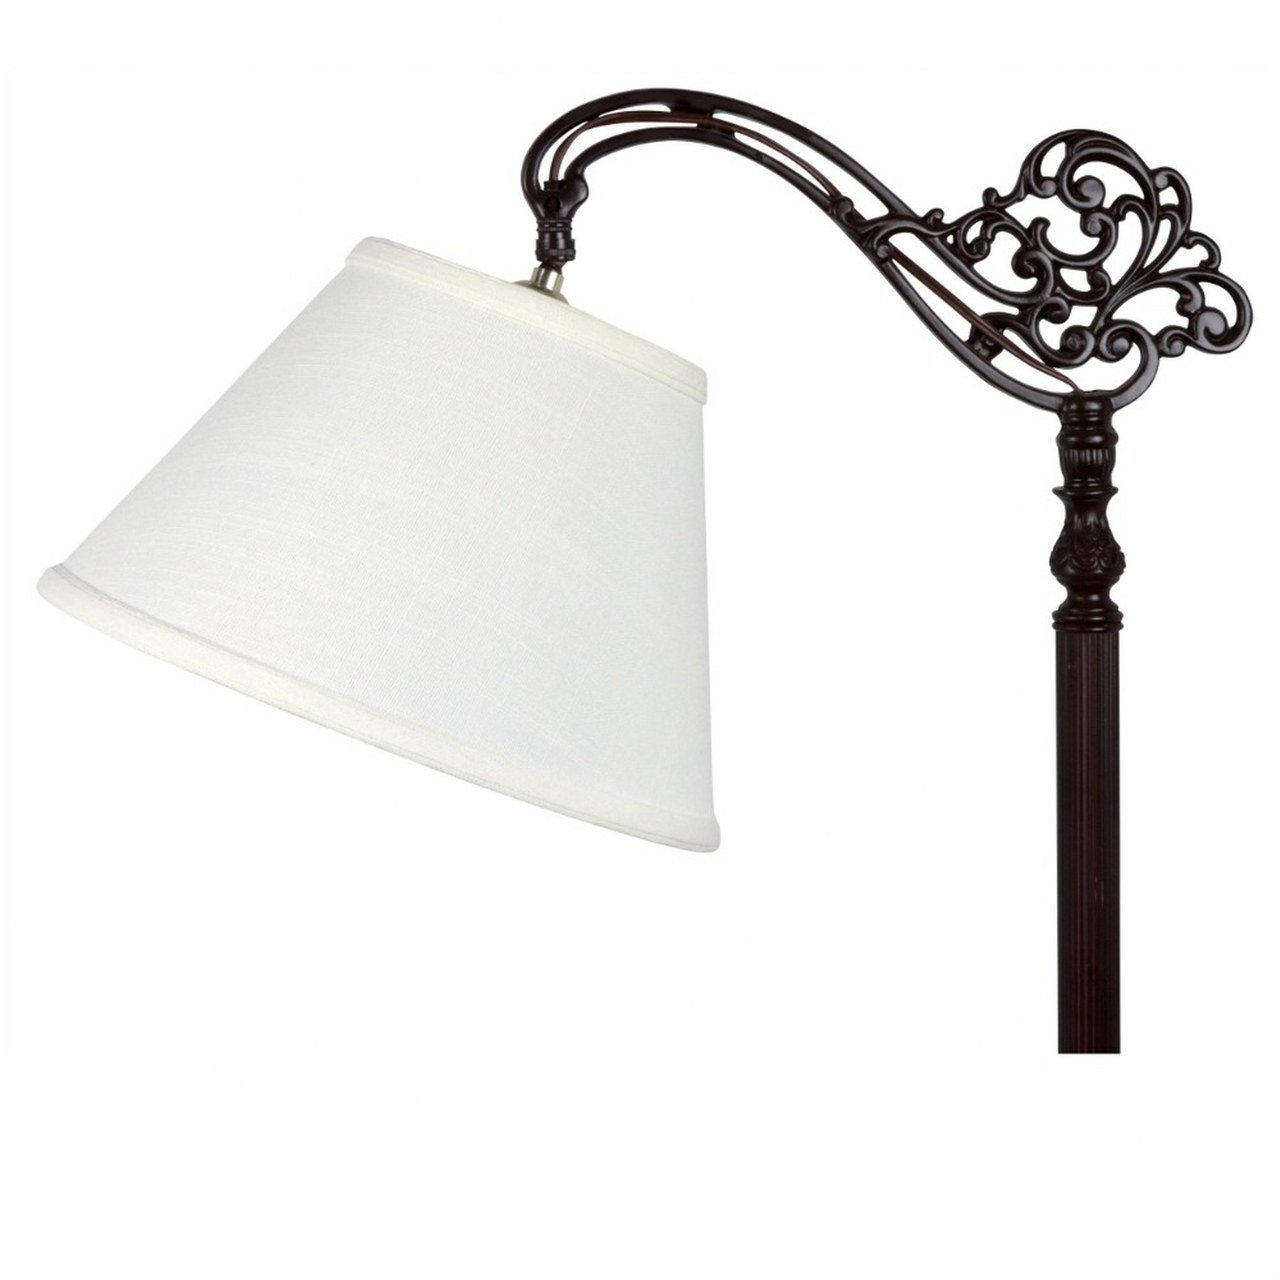 Upgradelights White Linen 10 Inch Uno Floor Lampshade Replacement (4x10x7)      Amazon.com